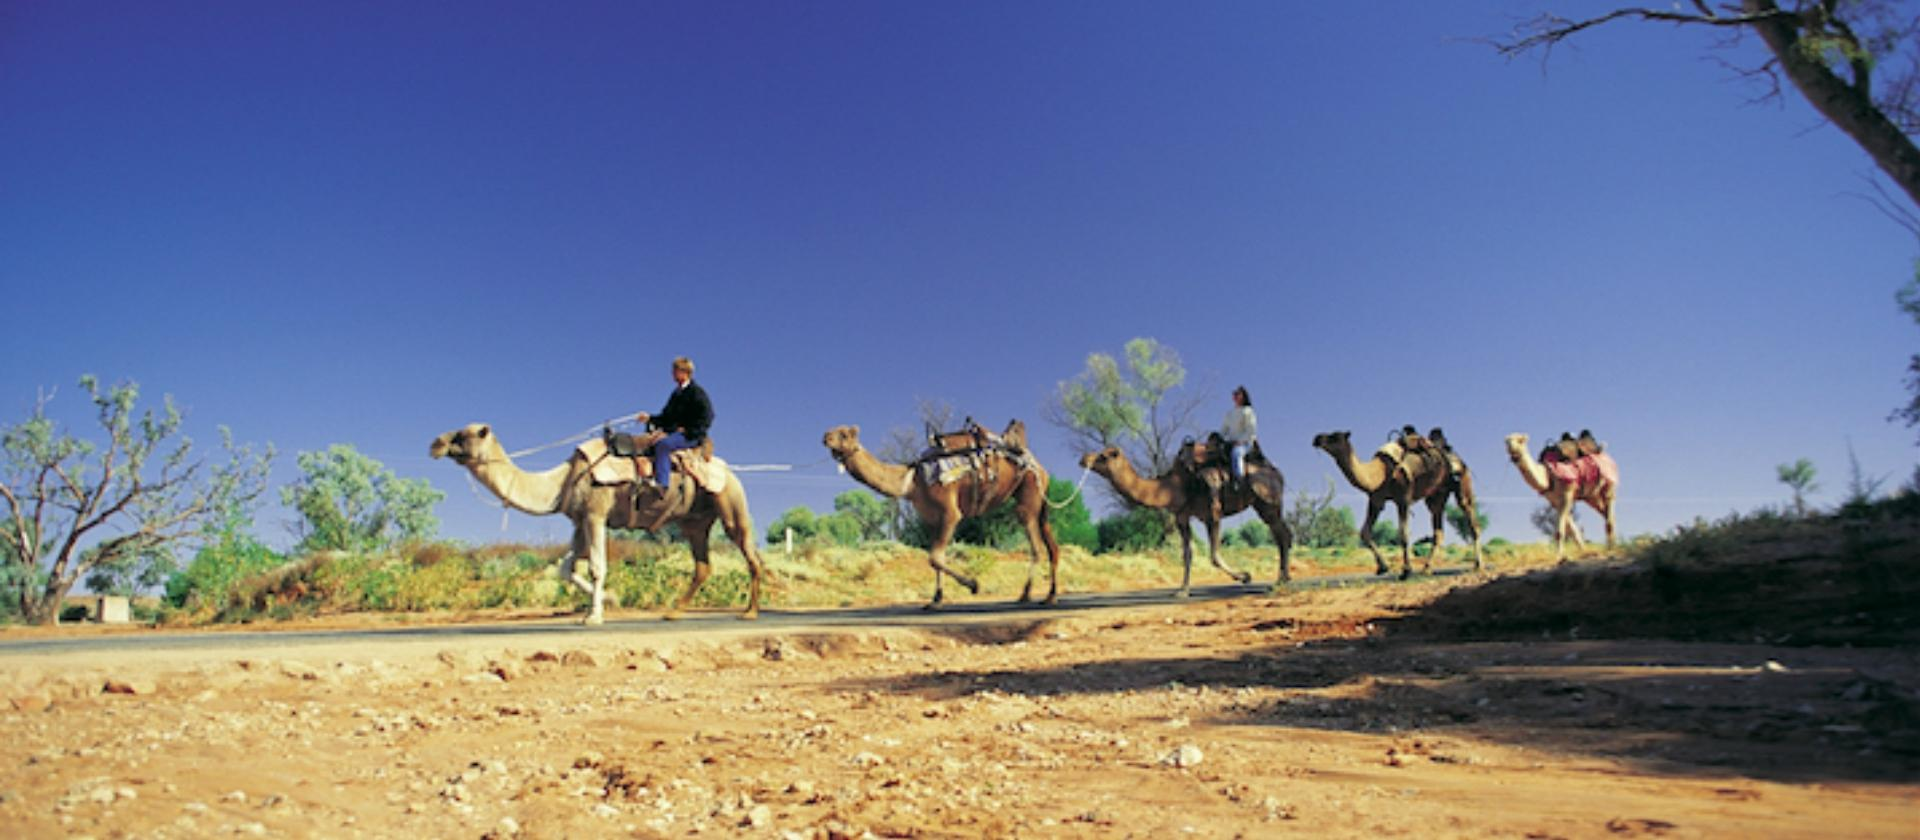 Camel Trek, Silverton near Broken Hill